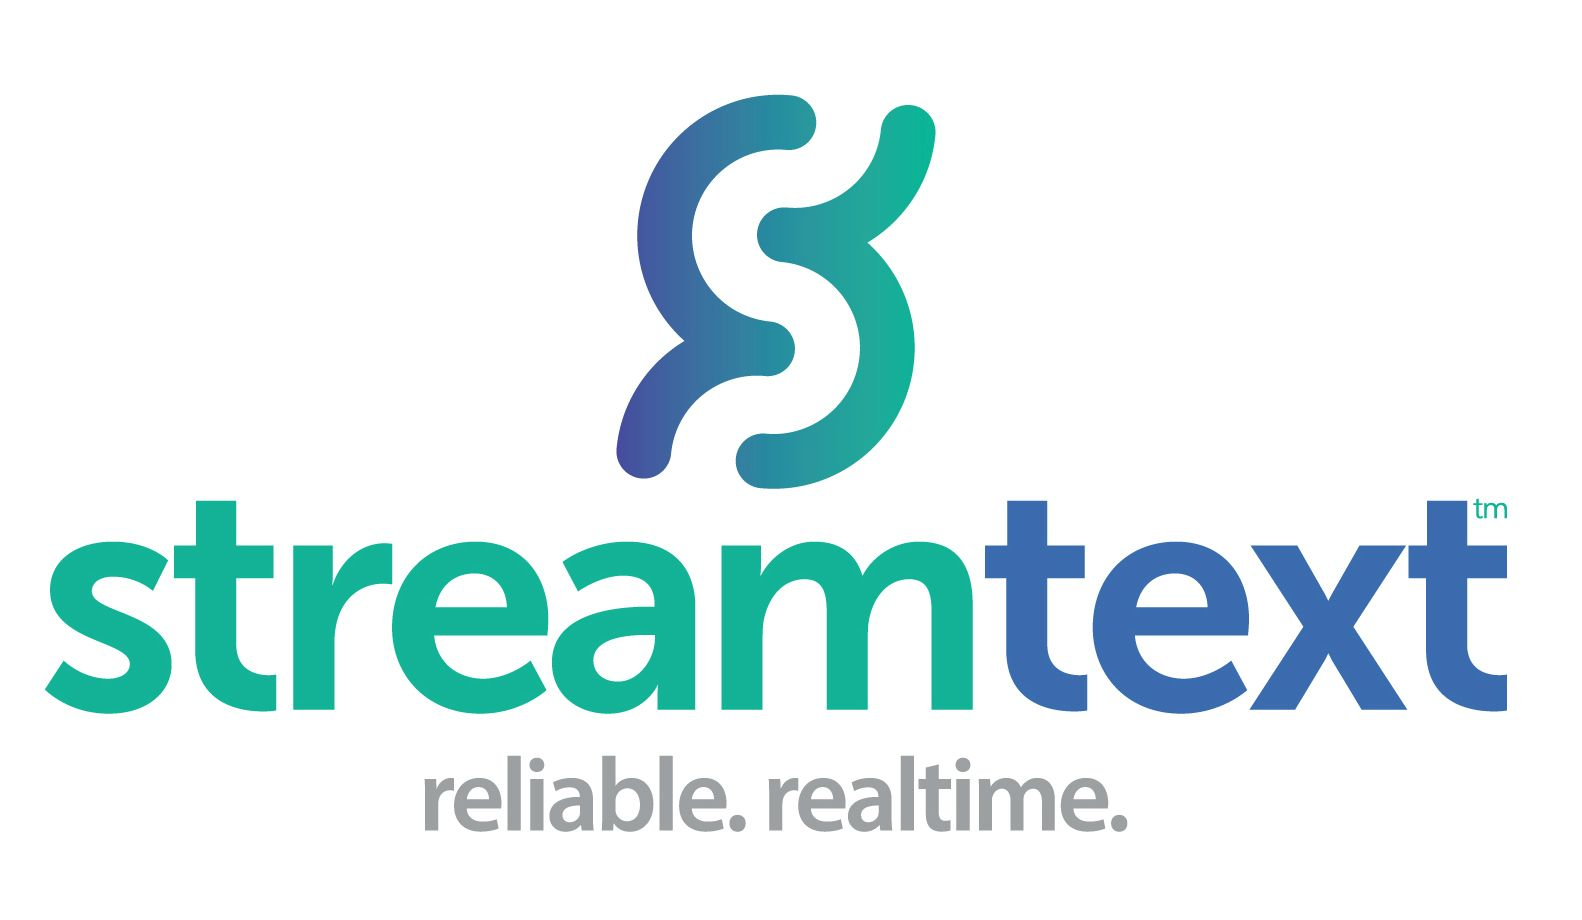 StreamText is the market-leading realtime caption solution